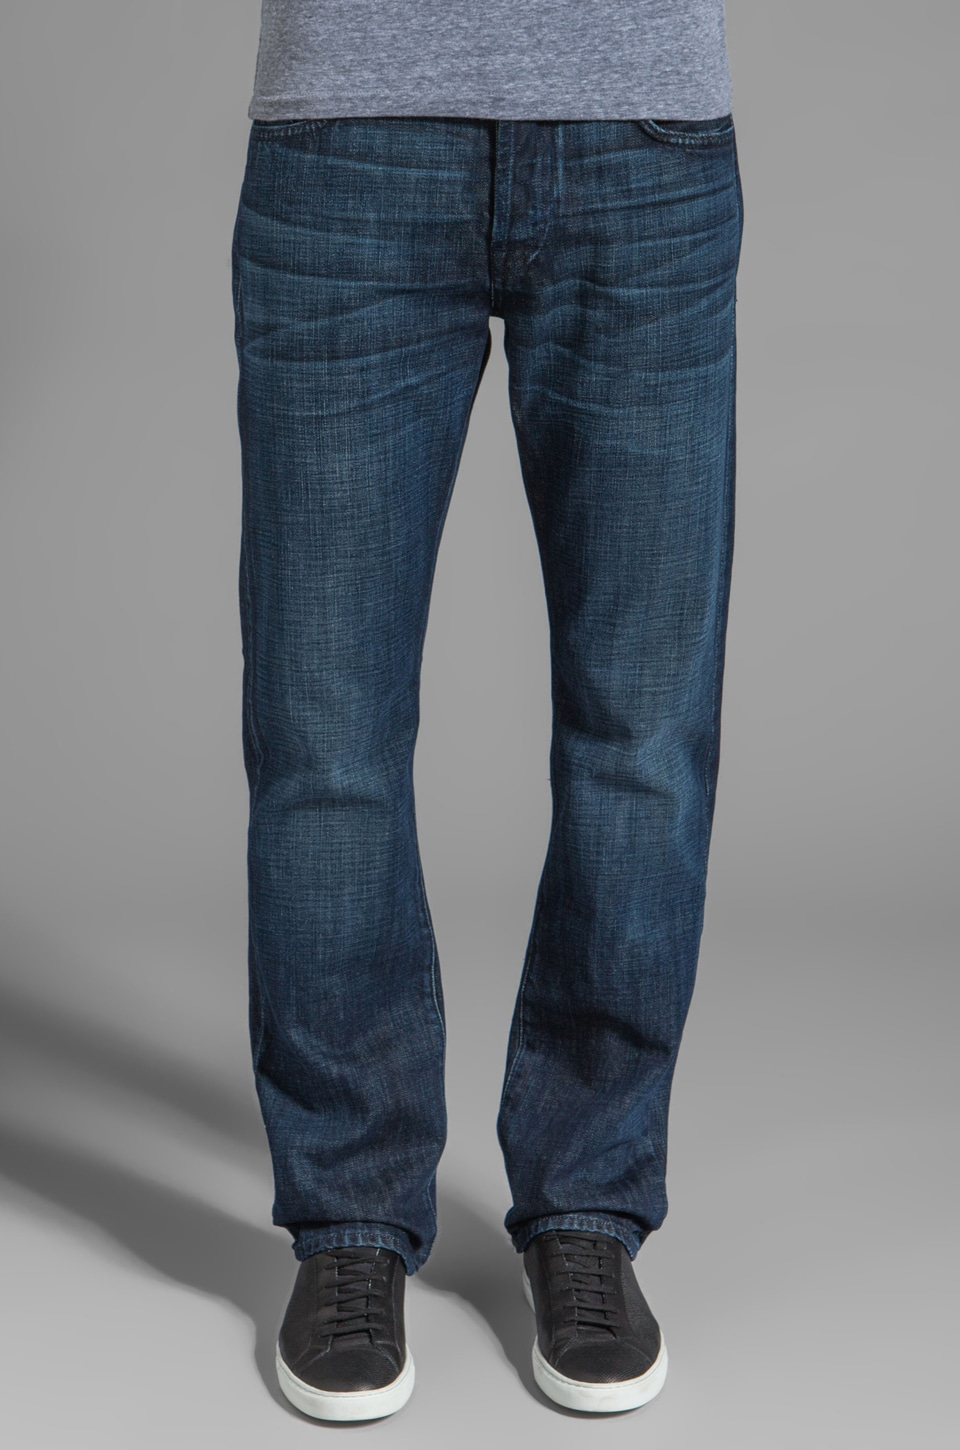 7 For All Mankind Standard in Porter Mist